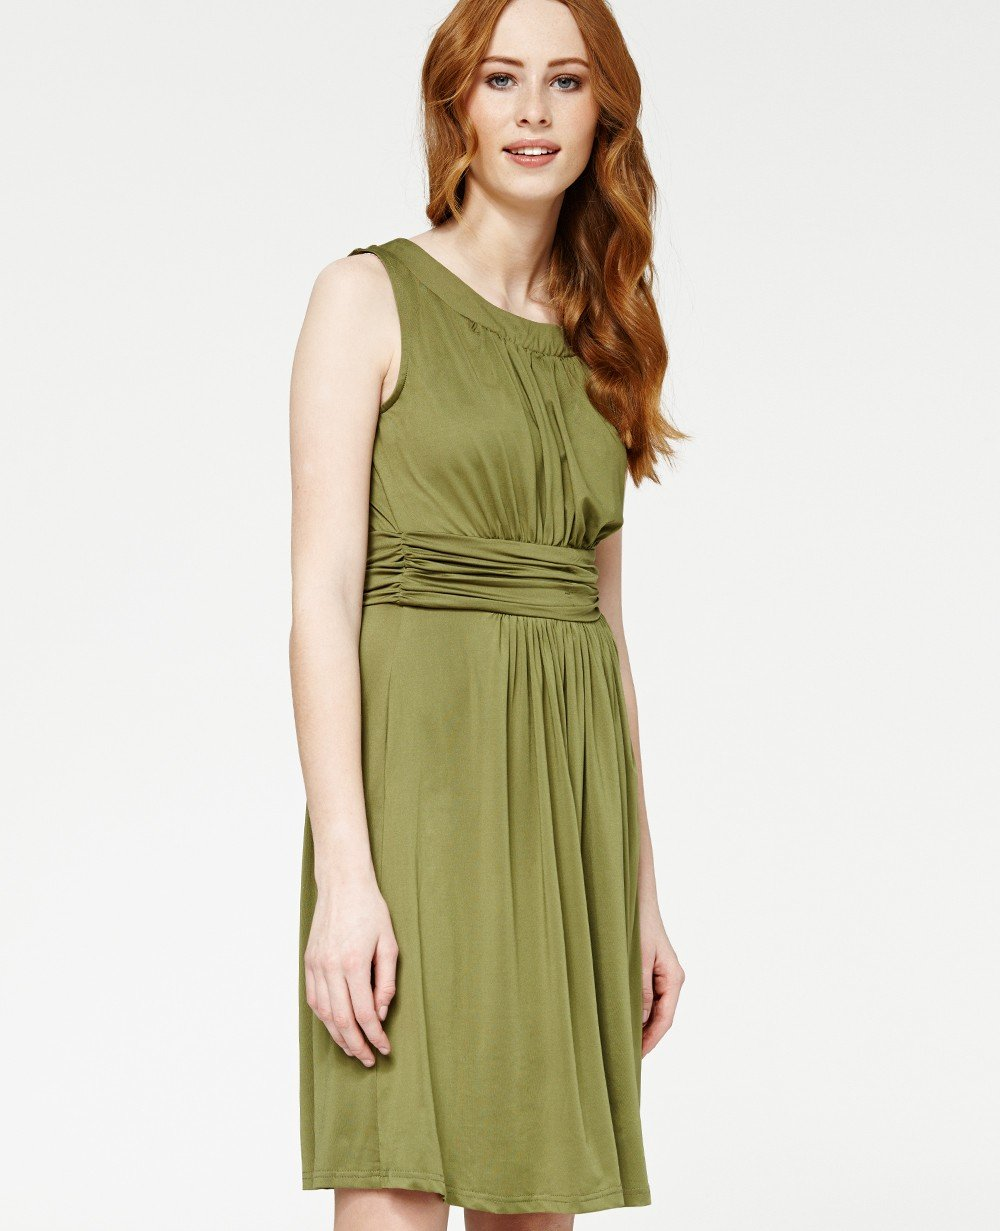 Misfit London Freya Olive Flared Jersey Knitted Day Dress